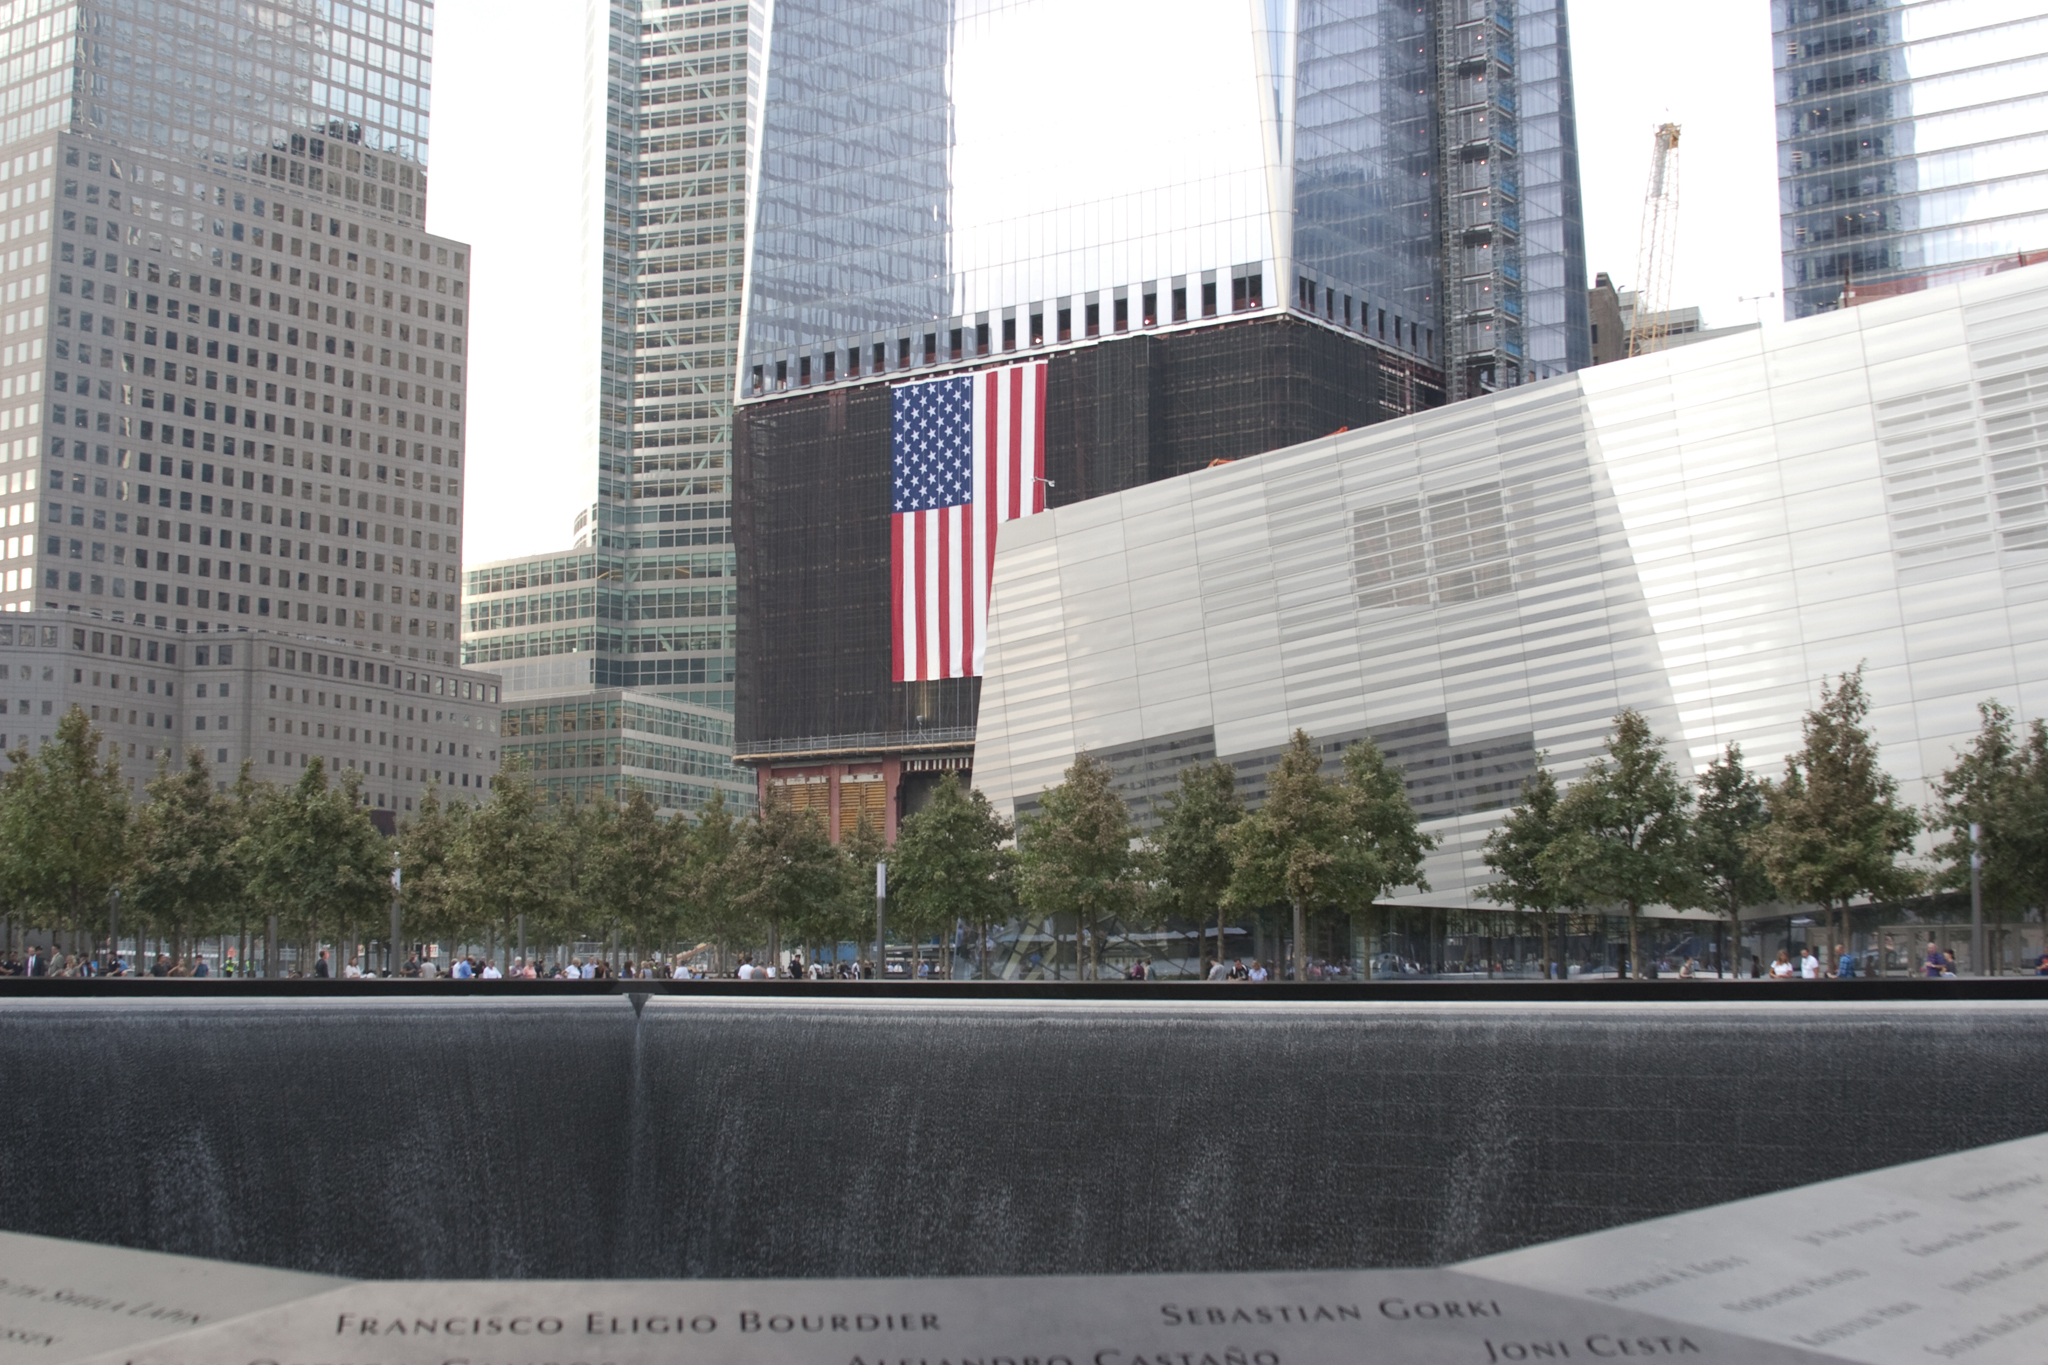 The 9/11 Memorial and Museum in NYC